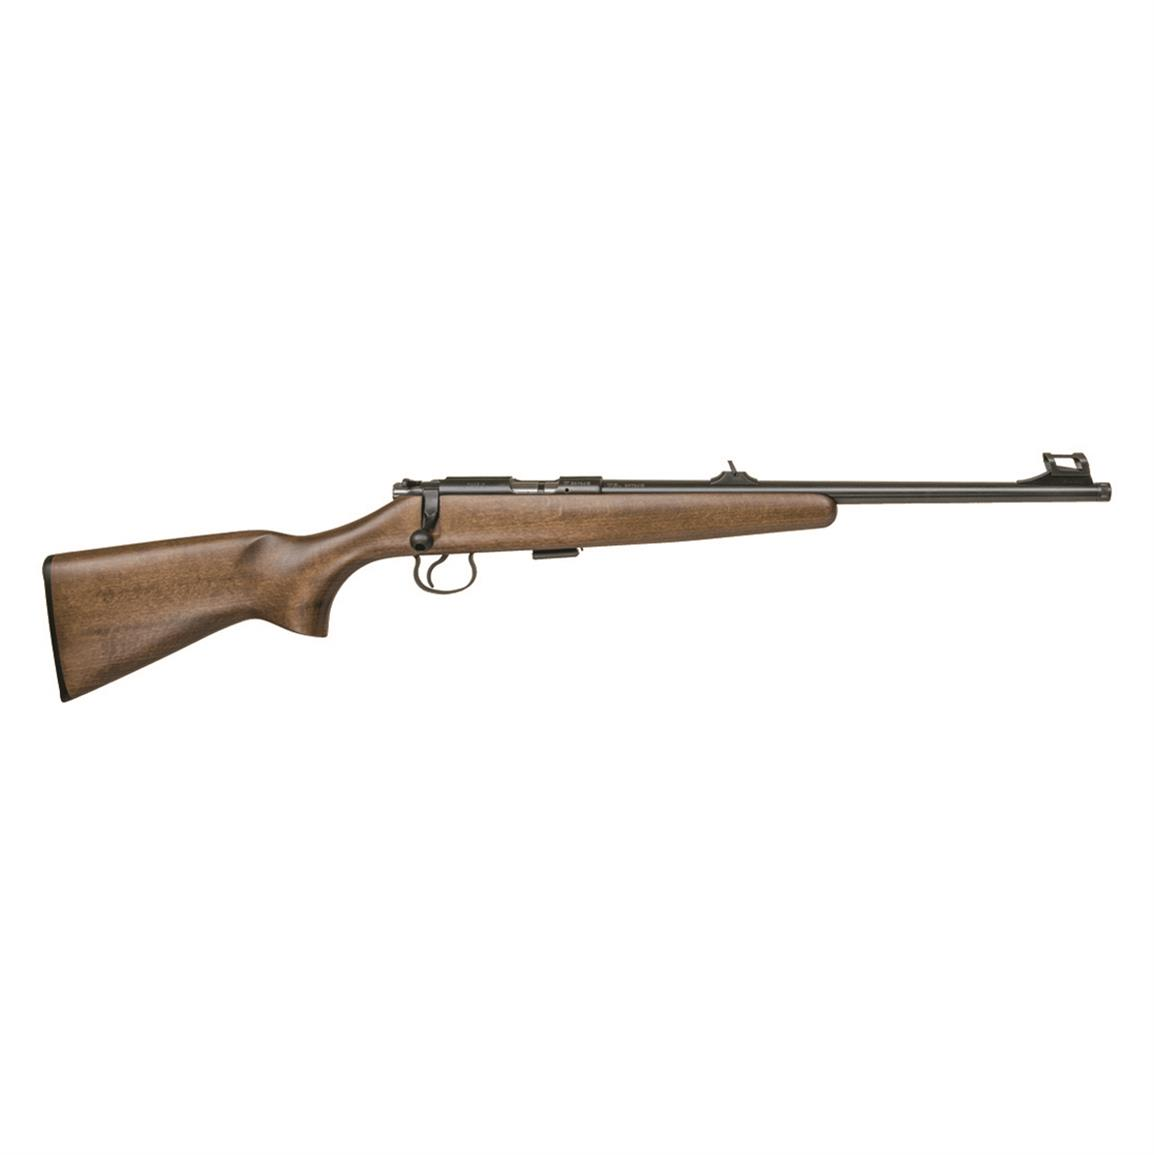 "CZ-USA Youth 455 Scout, Bolt Action, .22LR, 16.5"" Threaded Barrel, 1 Round"